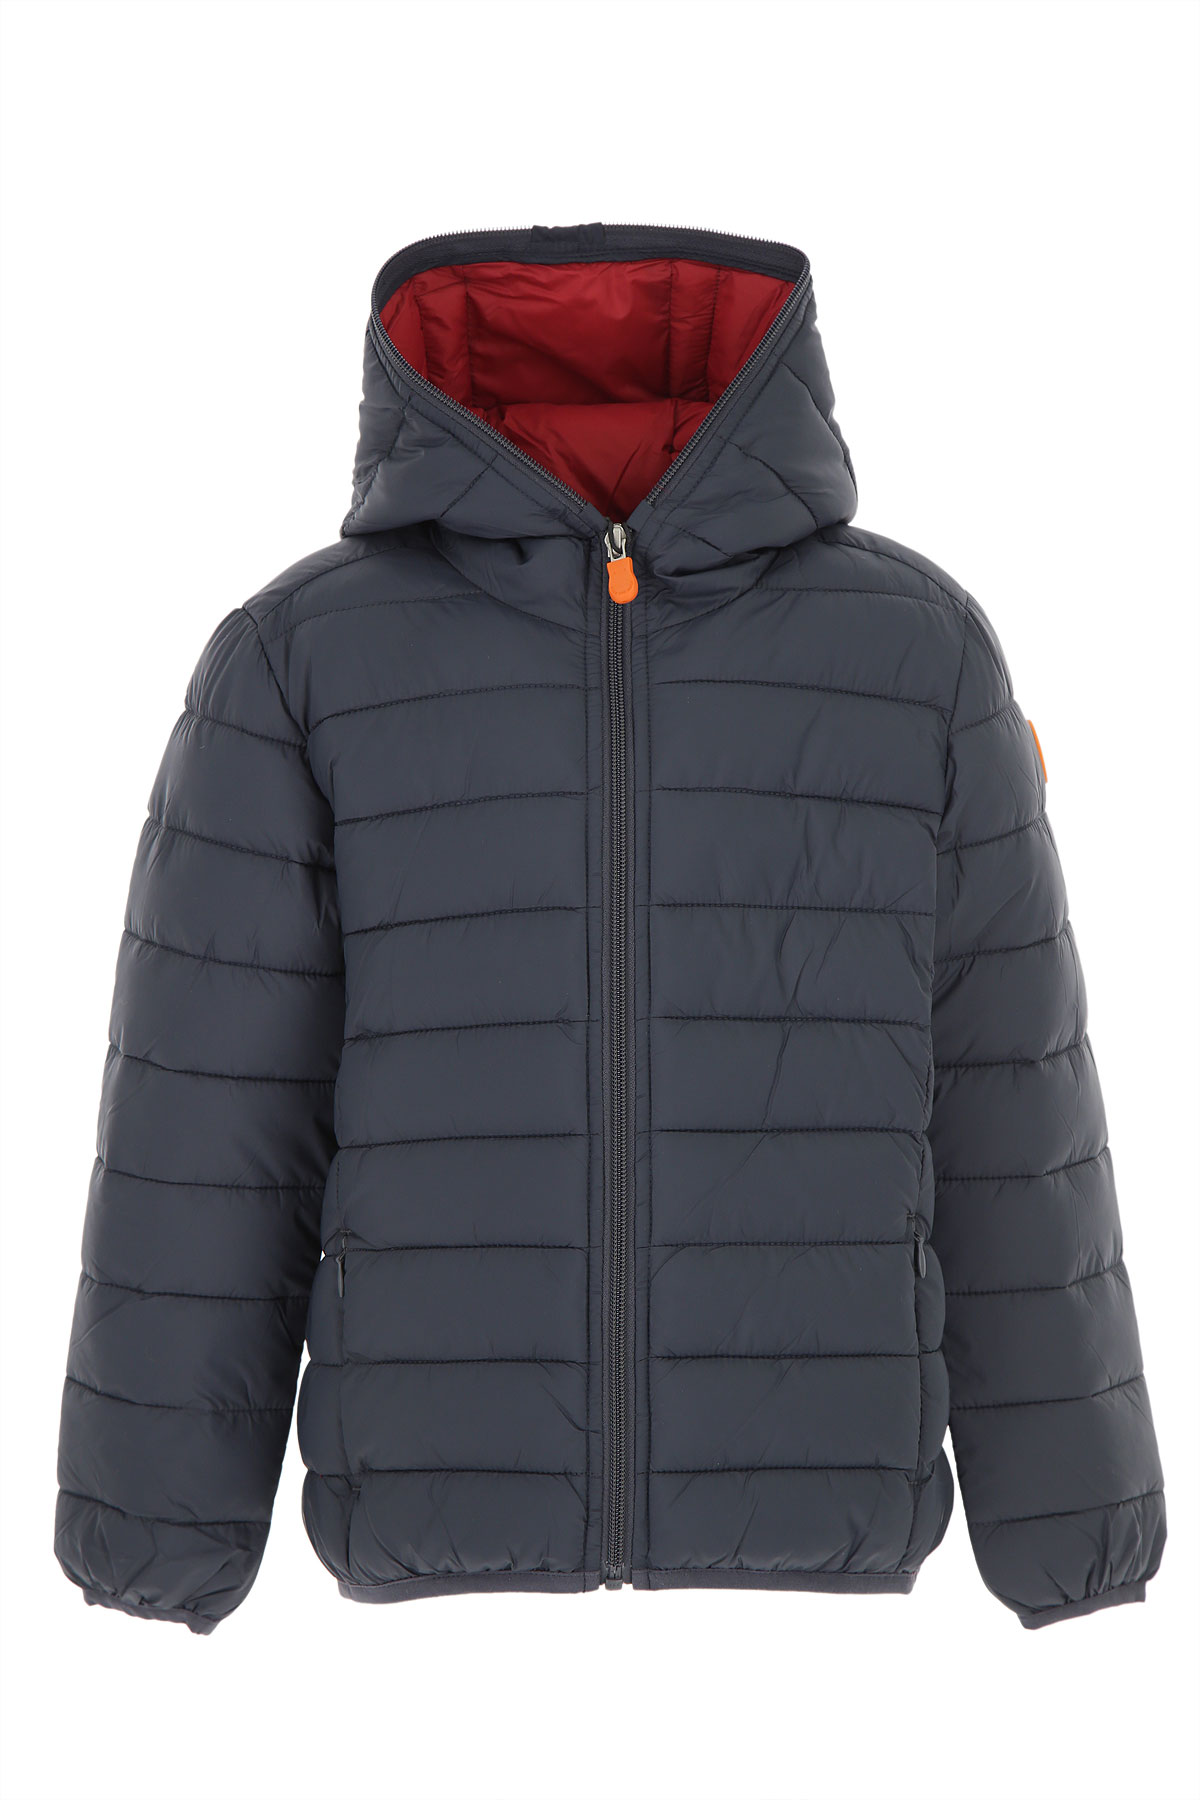 Save the Duck Boys Down Jacket for Kids, Puffer Ski Jacket On Sale, Blue Grey, Nylon, 2019, 12Y 2Y